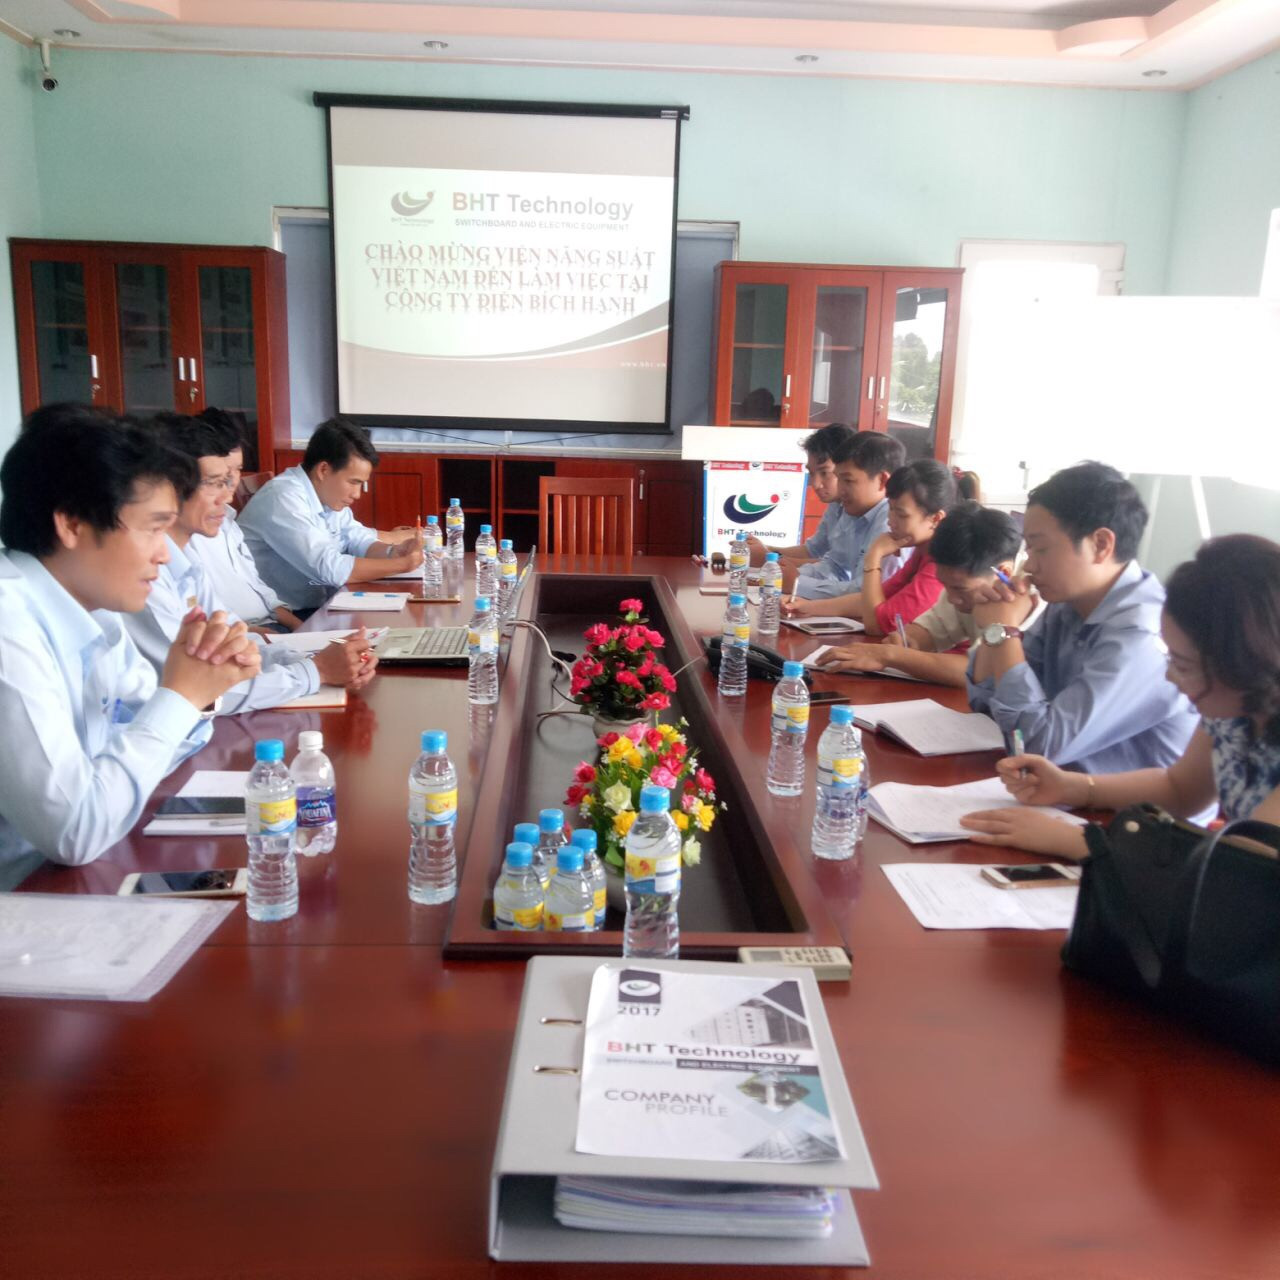 VIETNAM PRODUCTIVITY INSTITUTE  WORKED IN BHT Technology FACTORY